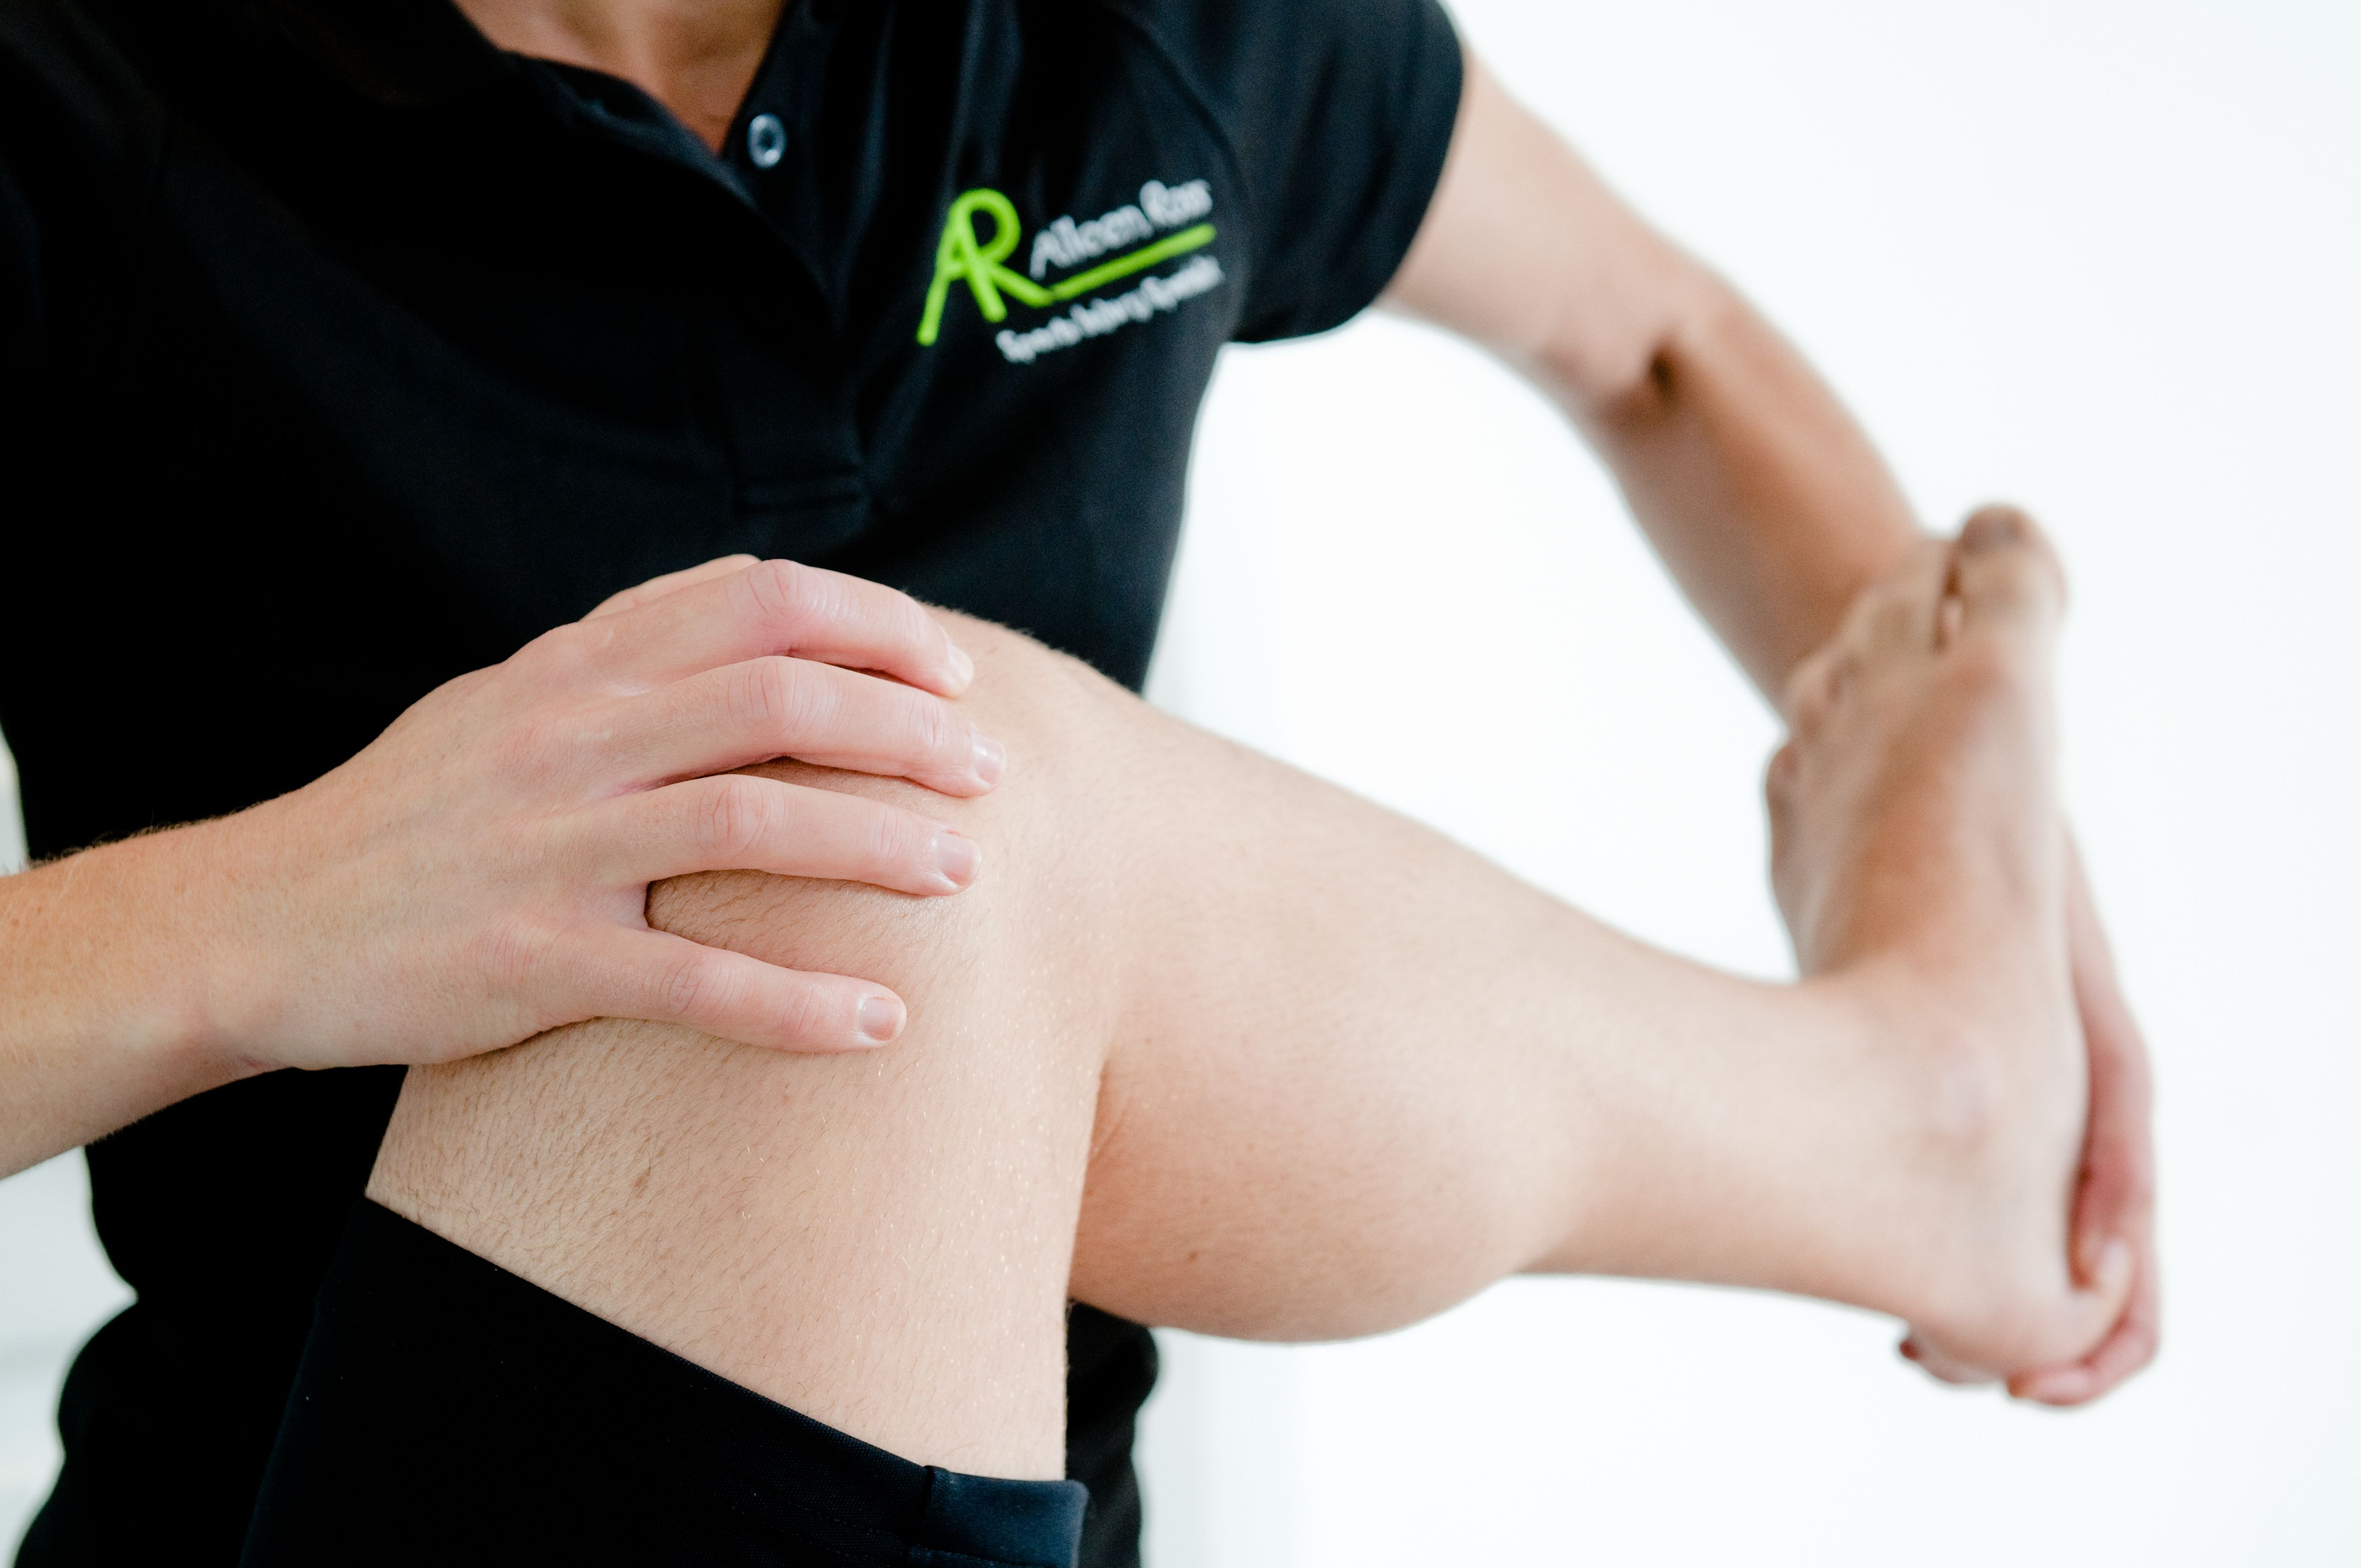 Our program 'DNA 4 Life – ARTHRITIS & JOINT REGENERATION PACKAGE' offers a non-surgical technique to fight against arthritis and sports injuries. Through an exclusive treatment protocol using your own cells and growth factors, we can facilitate the healing and regeneration of joints and other connective tissues within the body.  See more at: http://www.dnahealthcorp.com/pdf/DNA_4_Life/DNA_4_Life-Arthritis_and_Joint_Regeneration.pdf